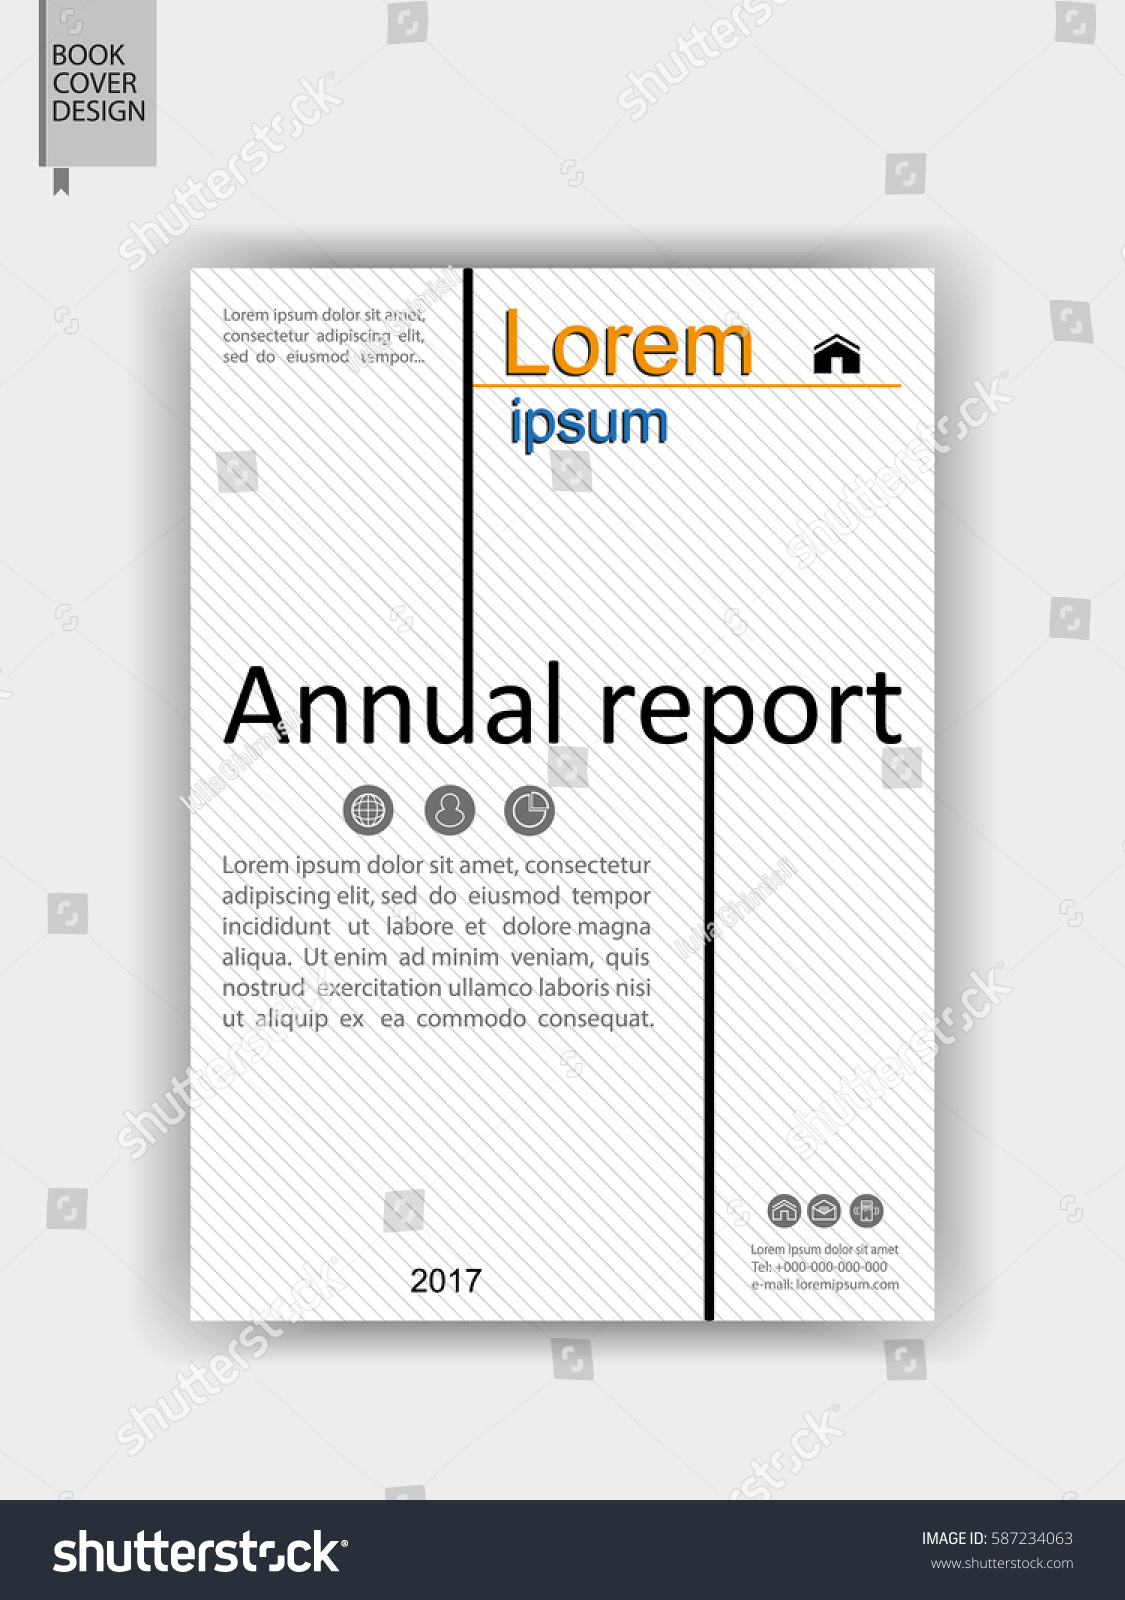 Annual Report Book Cover Design : Cover design books annual reports banners stock vector